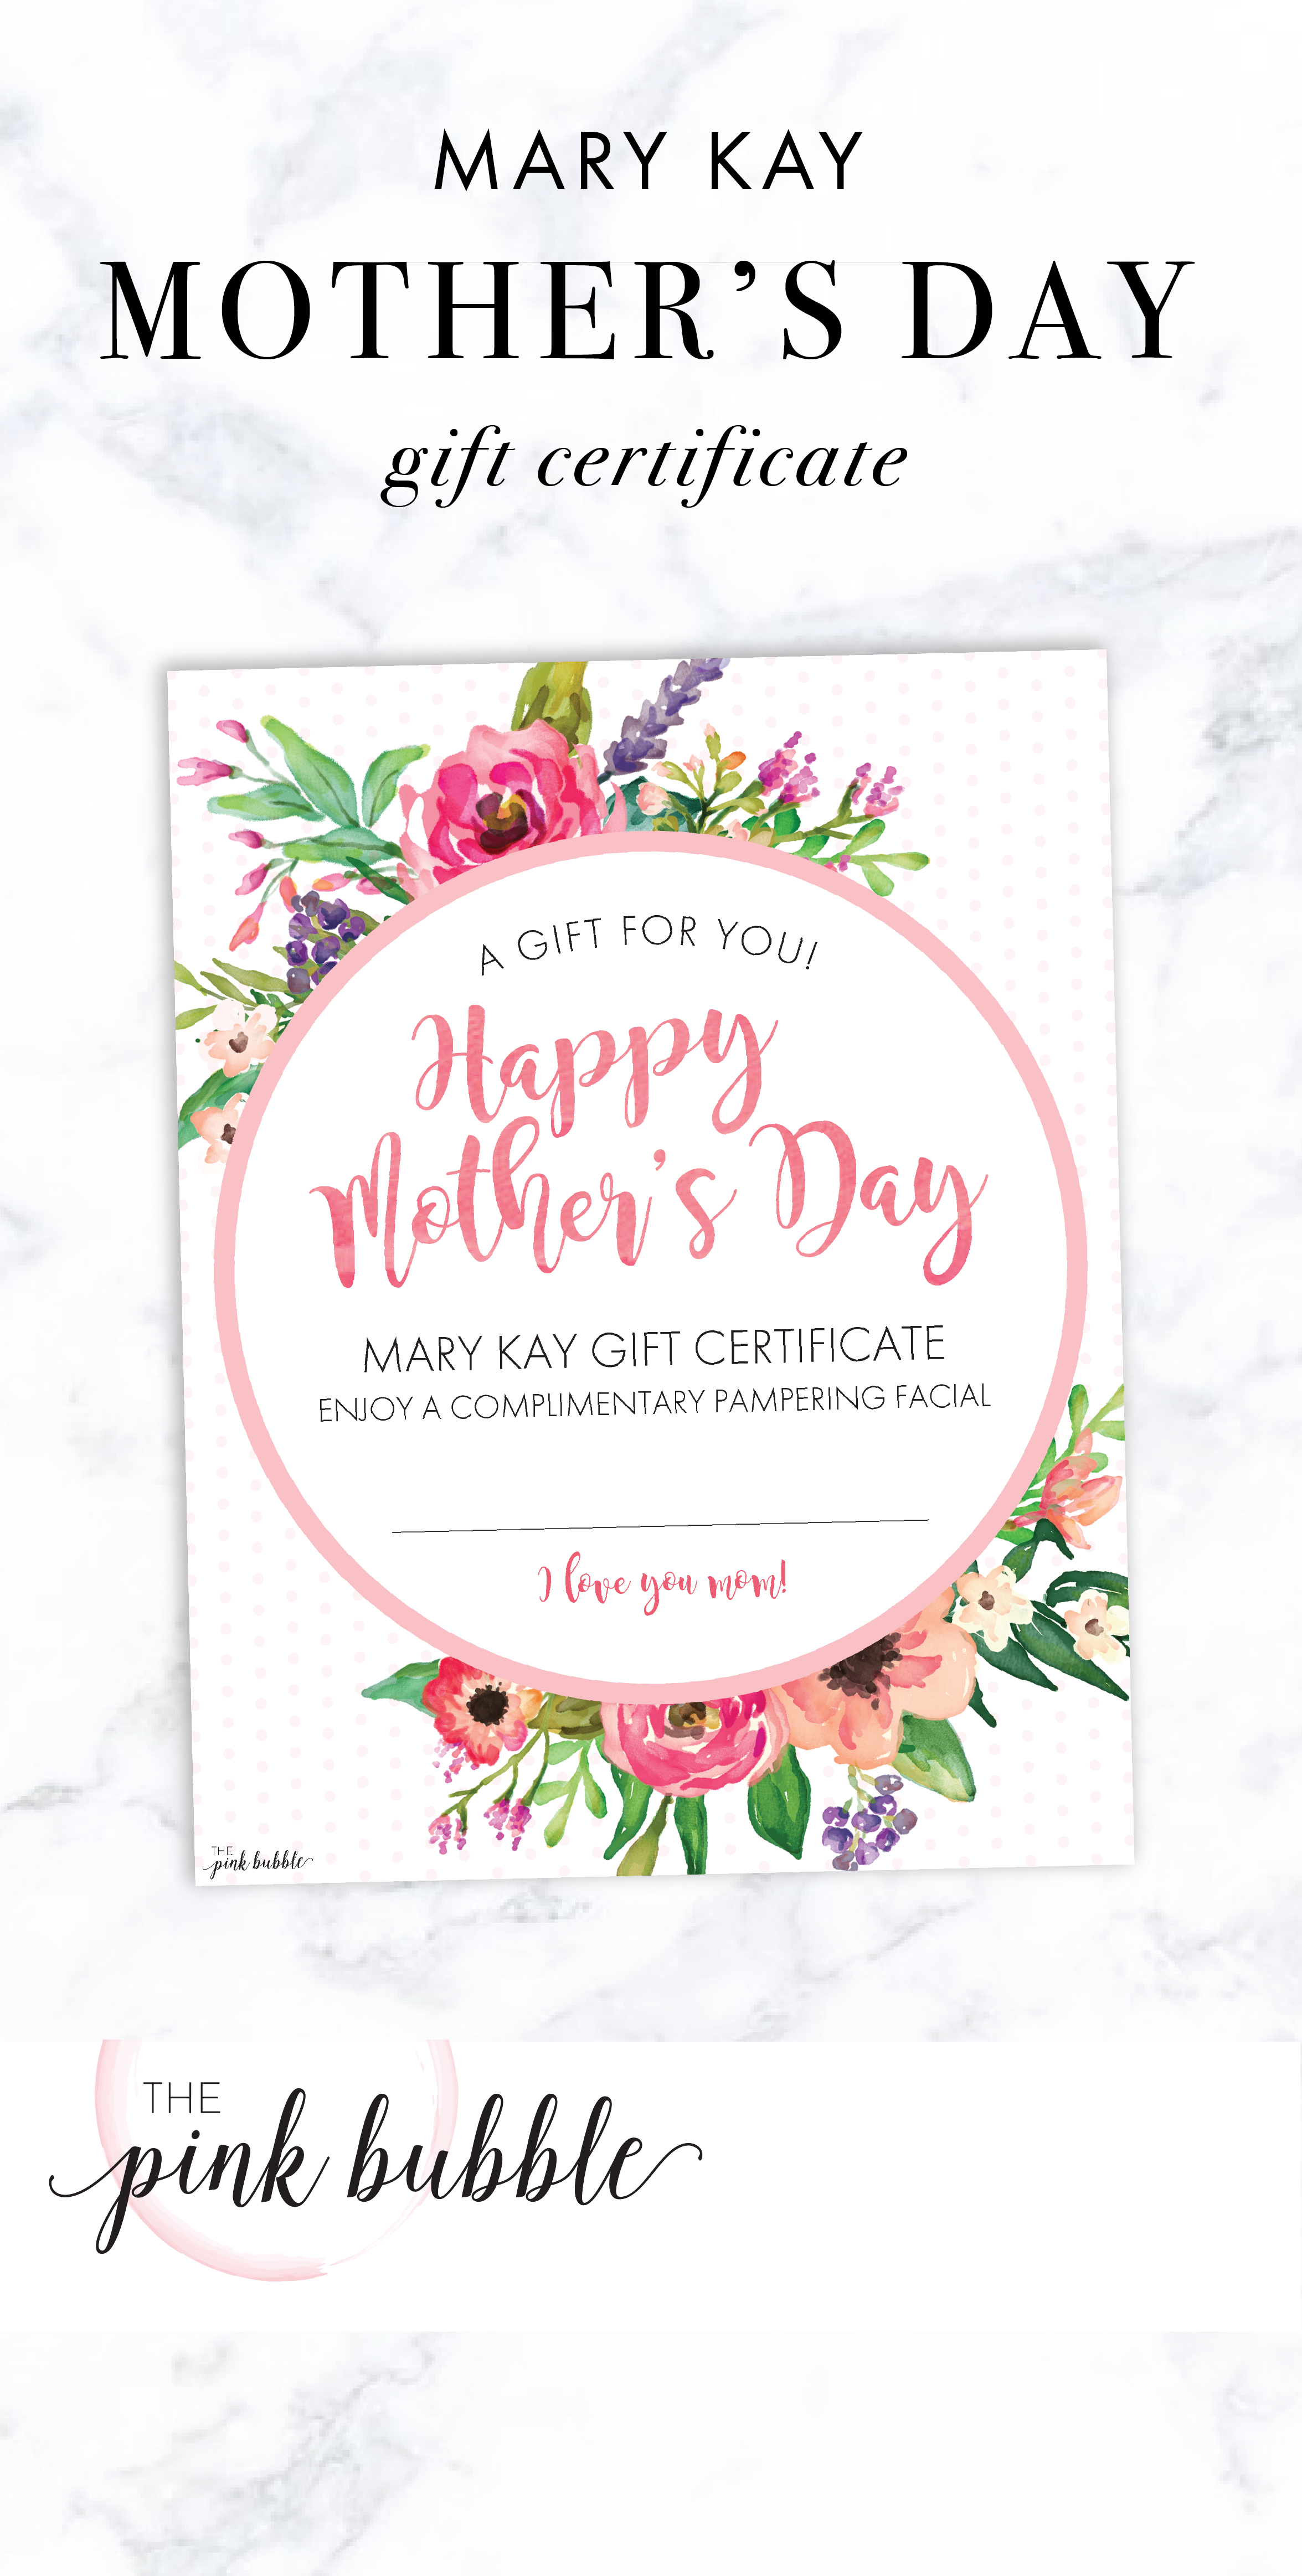 Mary Kay Mother S Day Gift Certificate Find It Only At Www Thepinkbubble Co Mary Kay Gift Certificates Mary Kay Gift Certificate Template Mary Kay Gifts